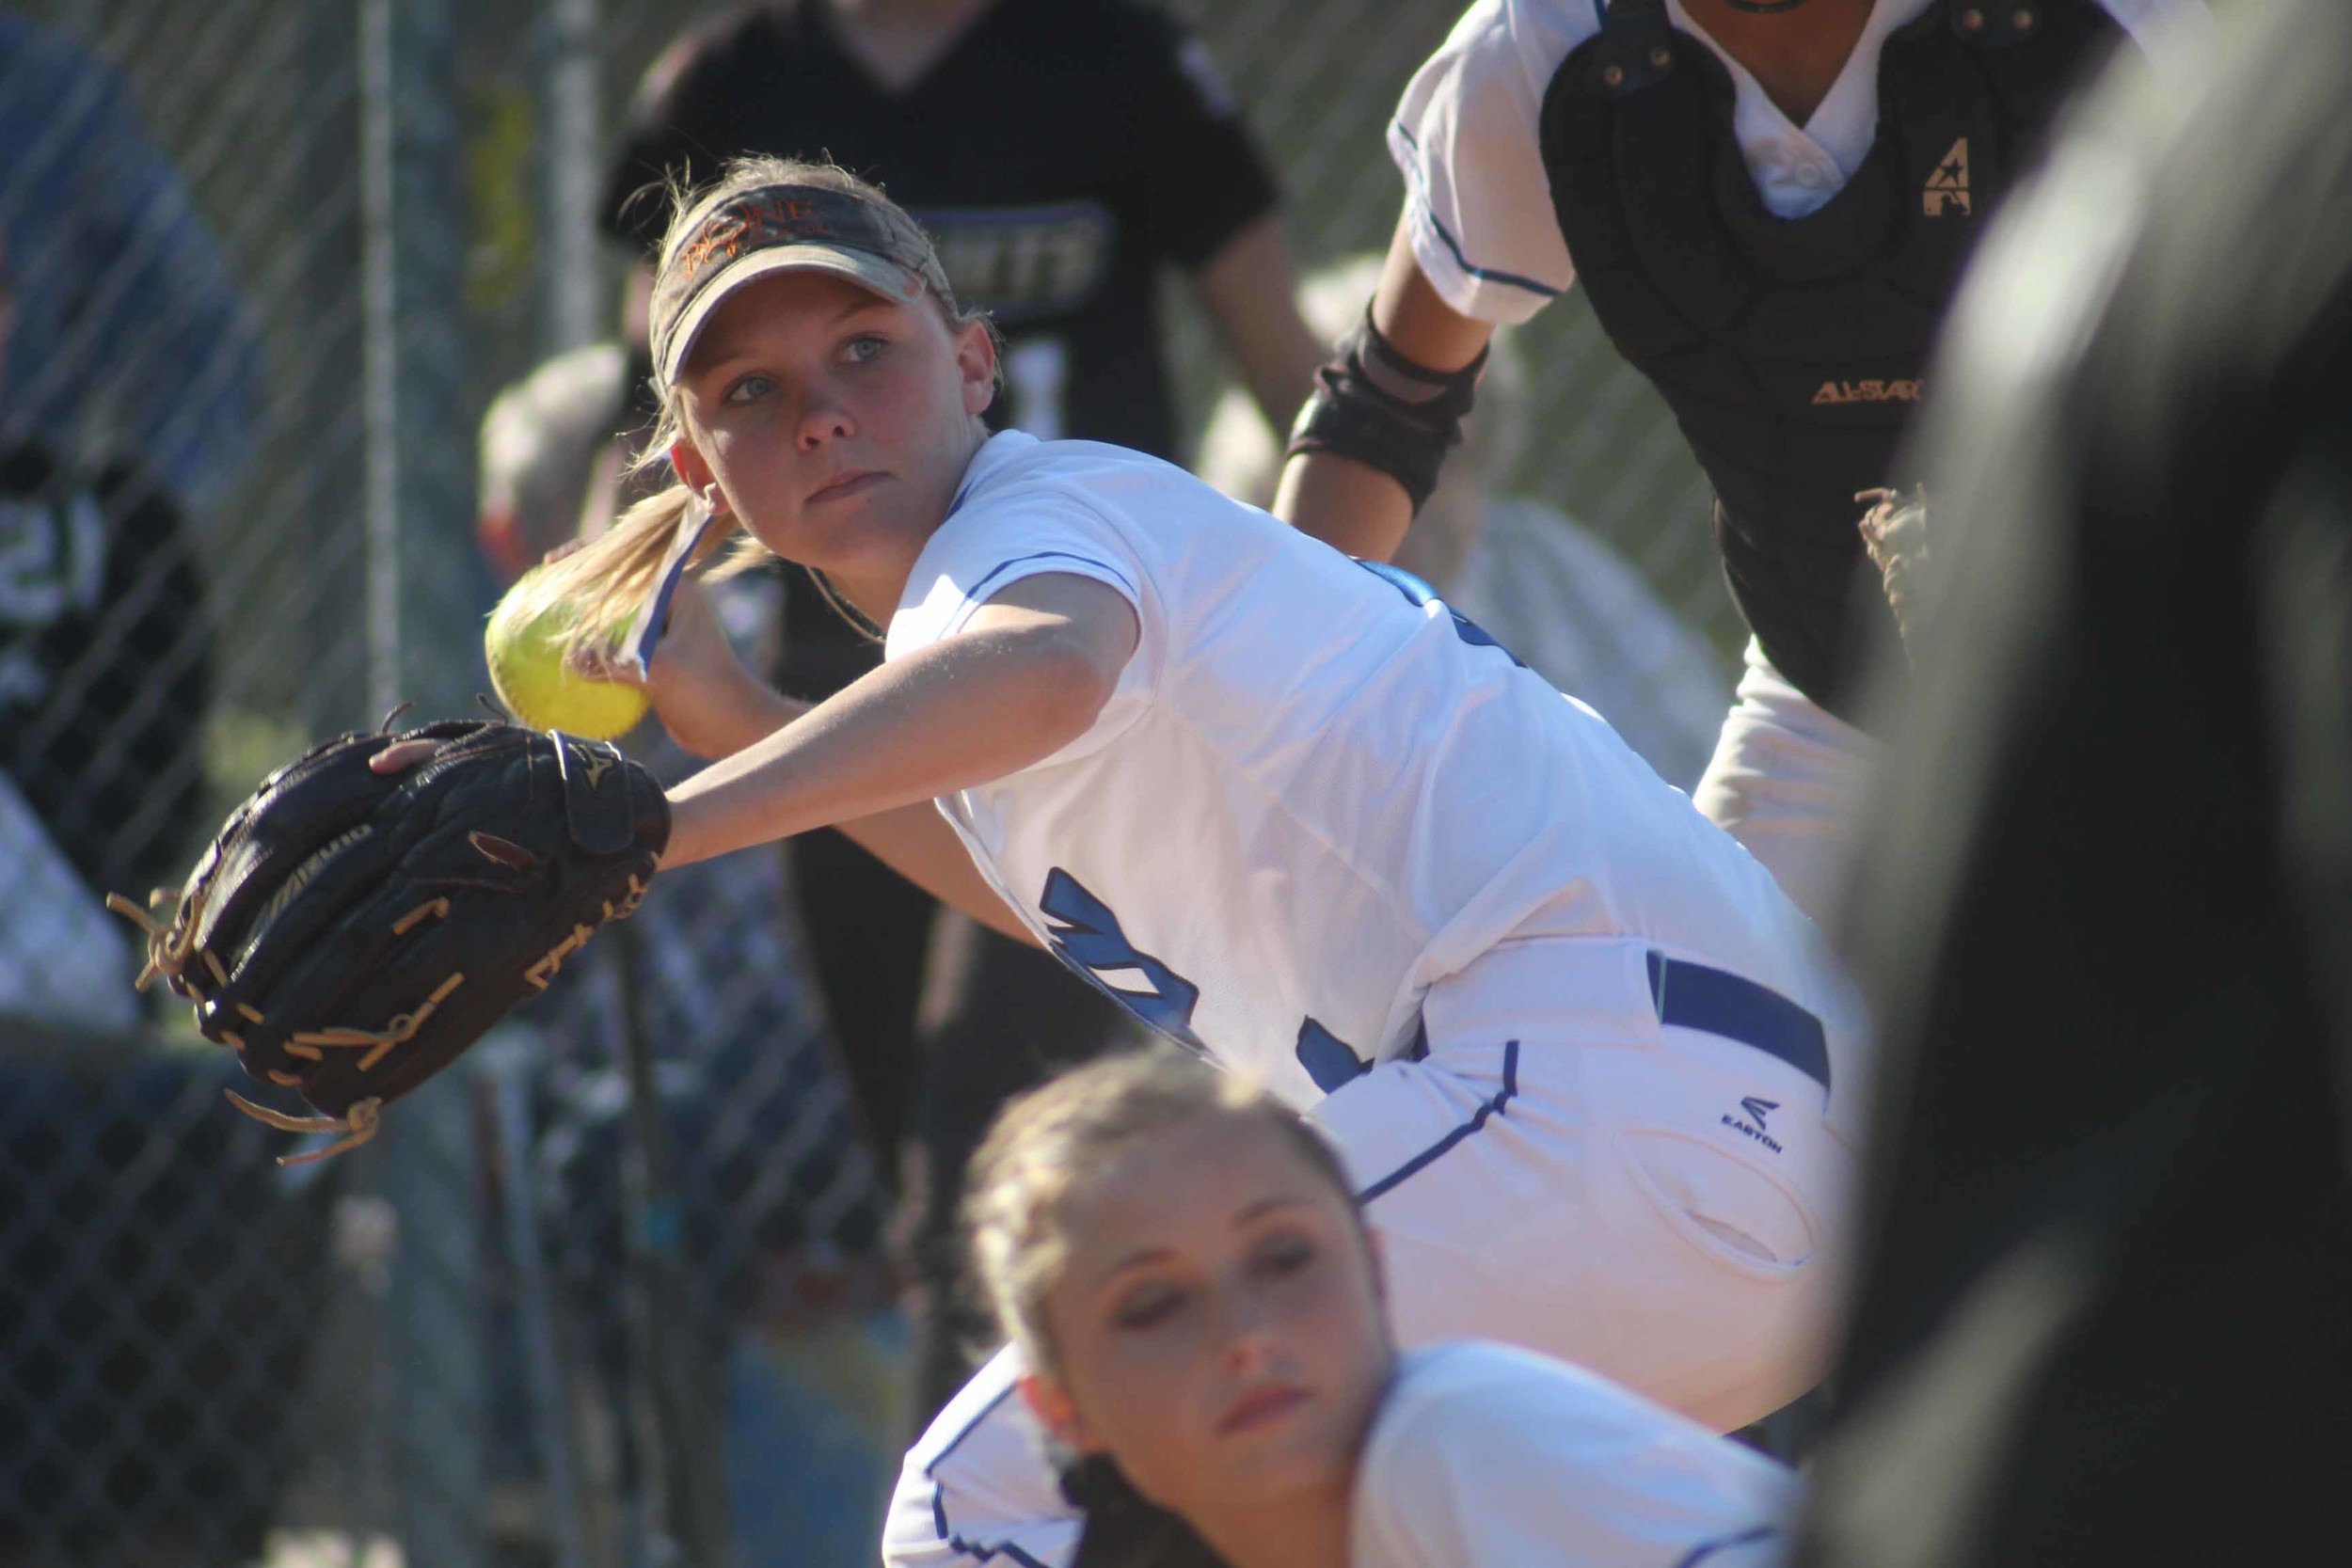 Clay High third baseman Hailey Stone eyeballs first base after fielding bunt attempt in sixth inning in Blue Devils 7-1 non-district loss to top-ranked in Florida Oakleaf High School on Tues., March 22.